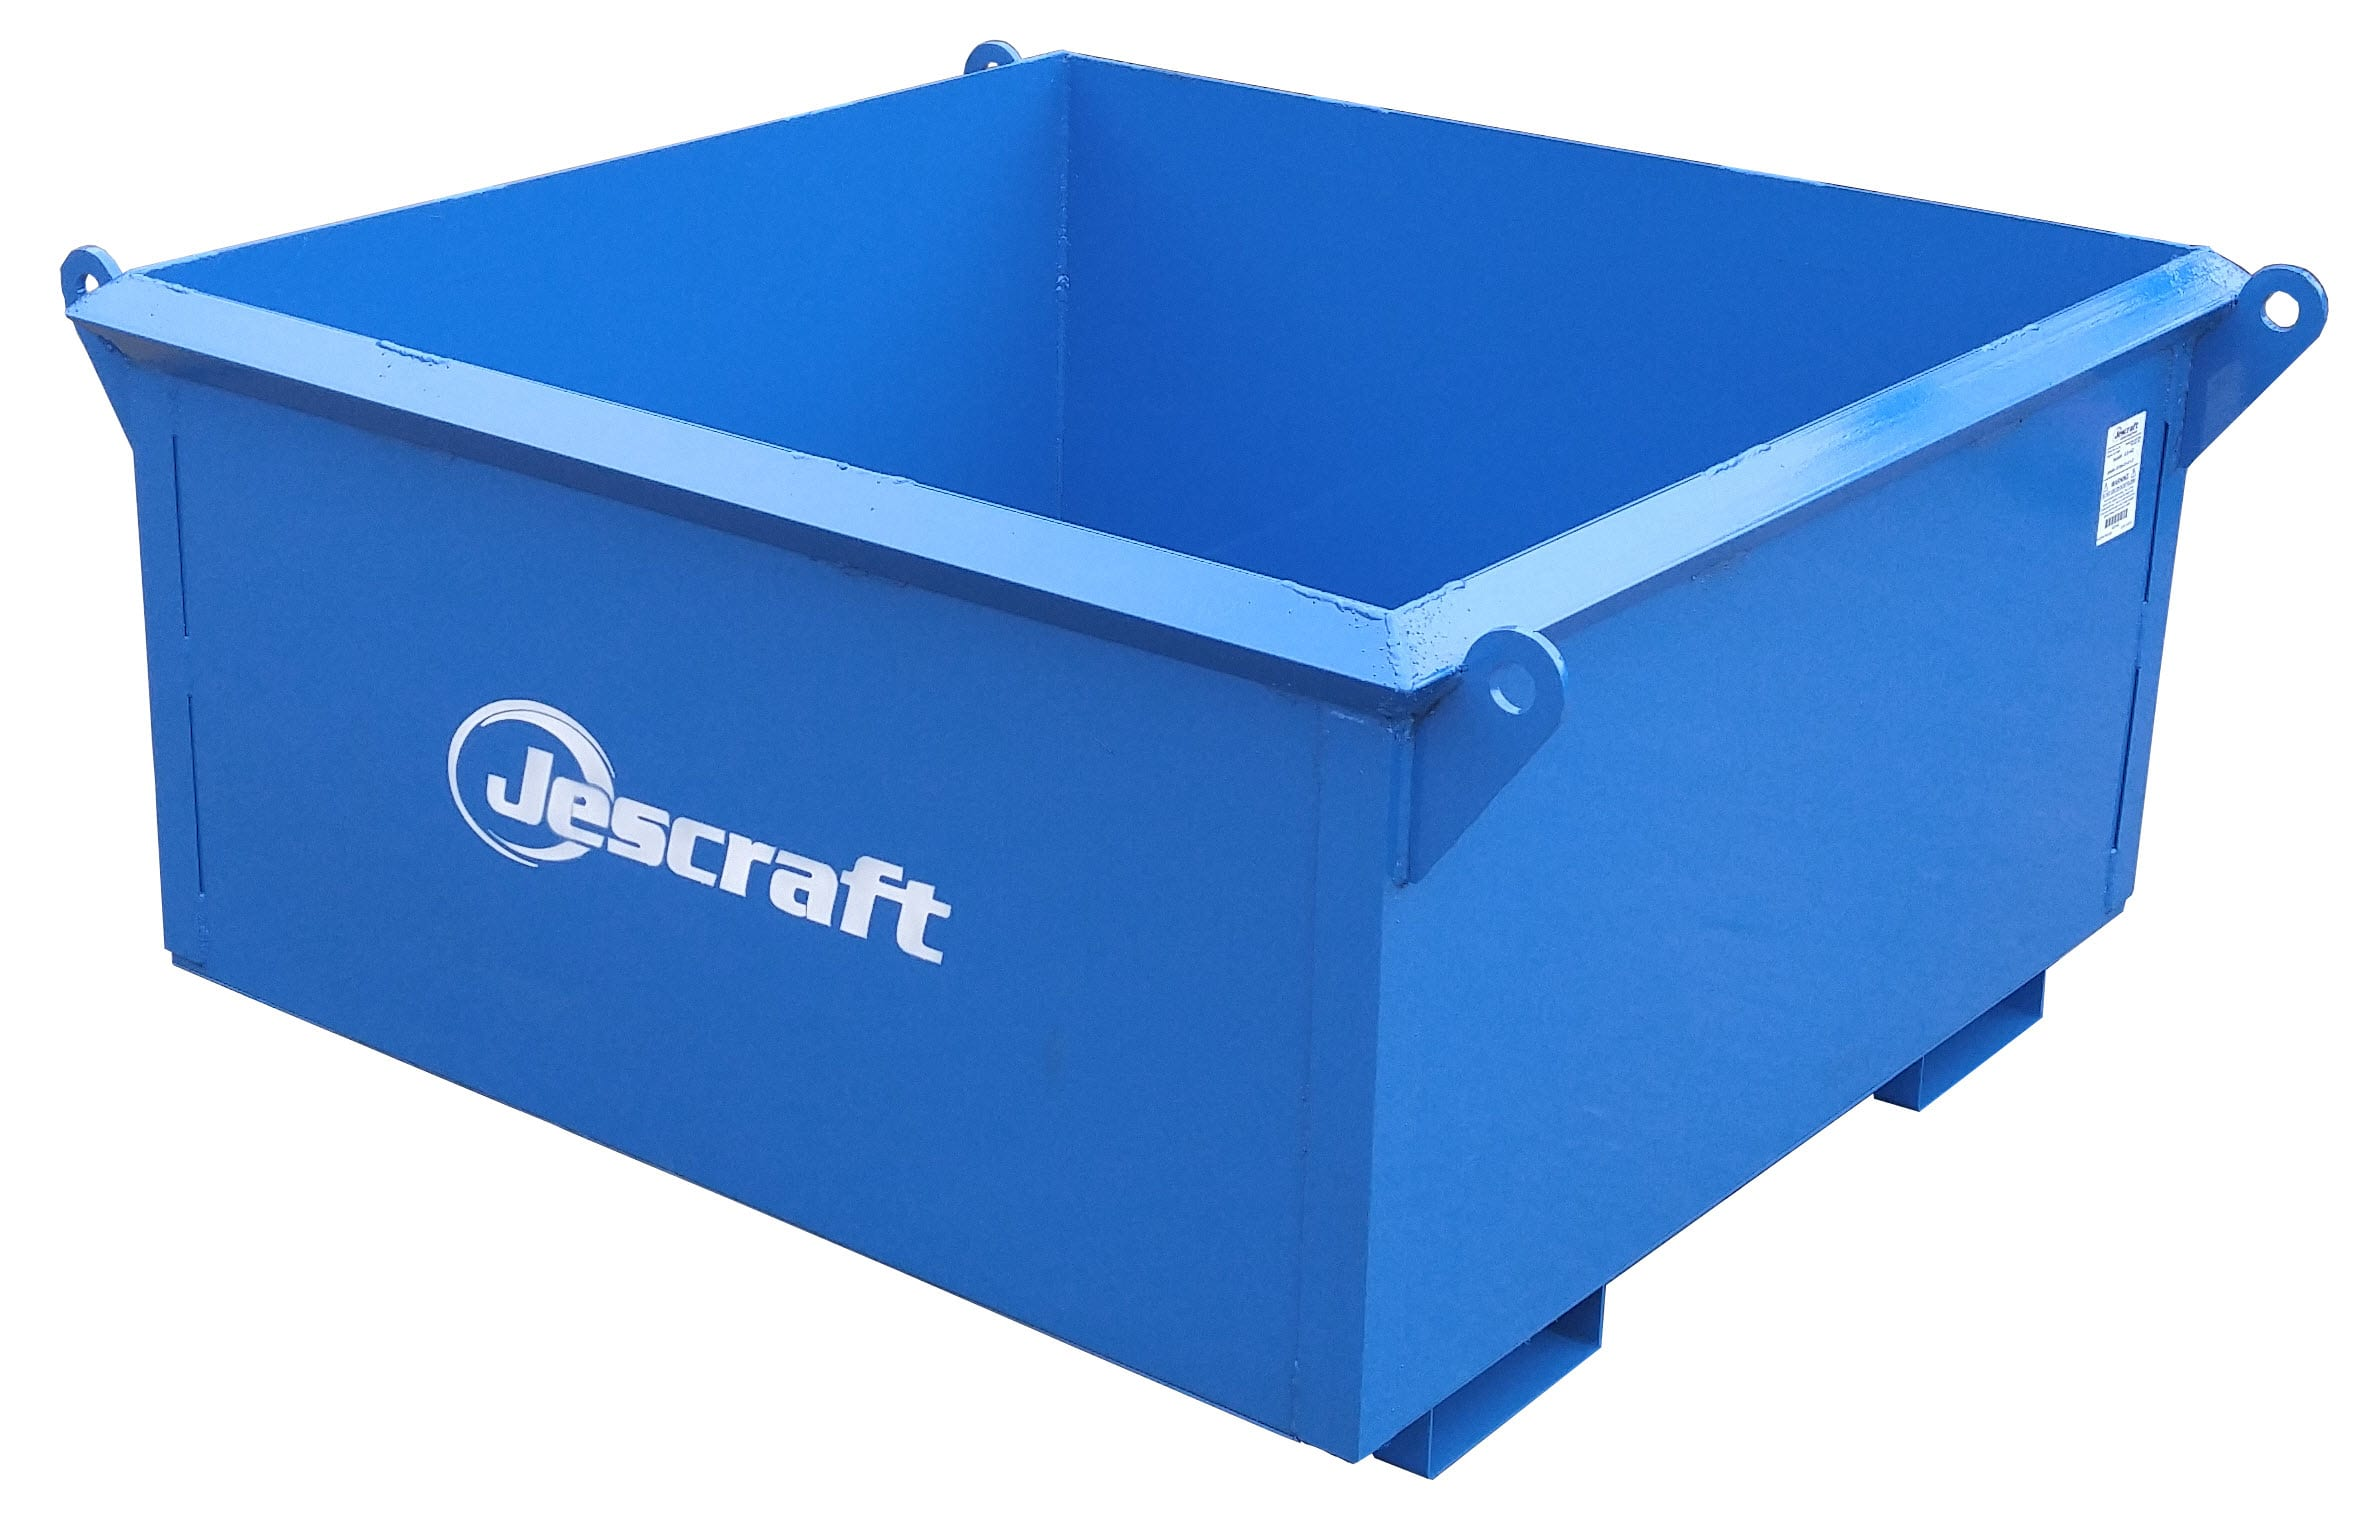 Lifting Boxes For Lift Assists : Lifting hoisting and hauling equipment